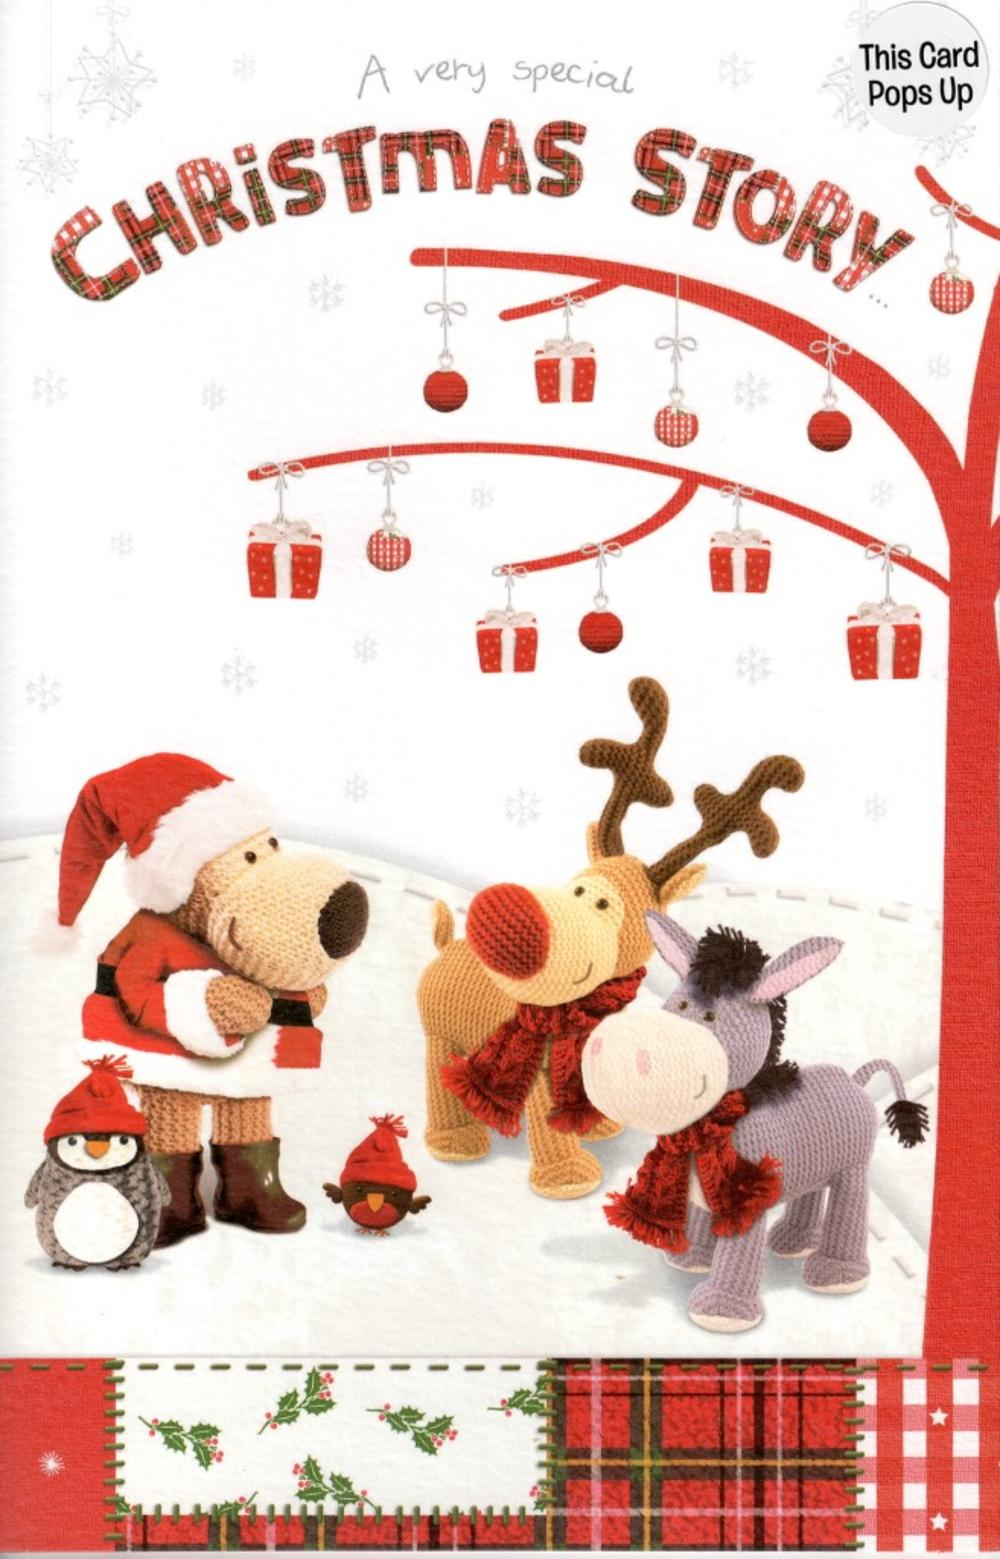 Boofle Pop-Up Christmas Story Card